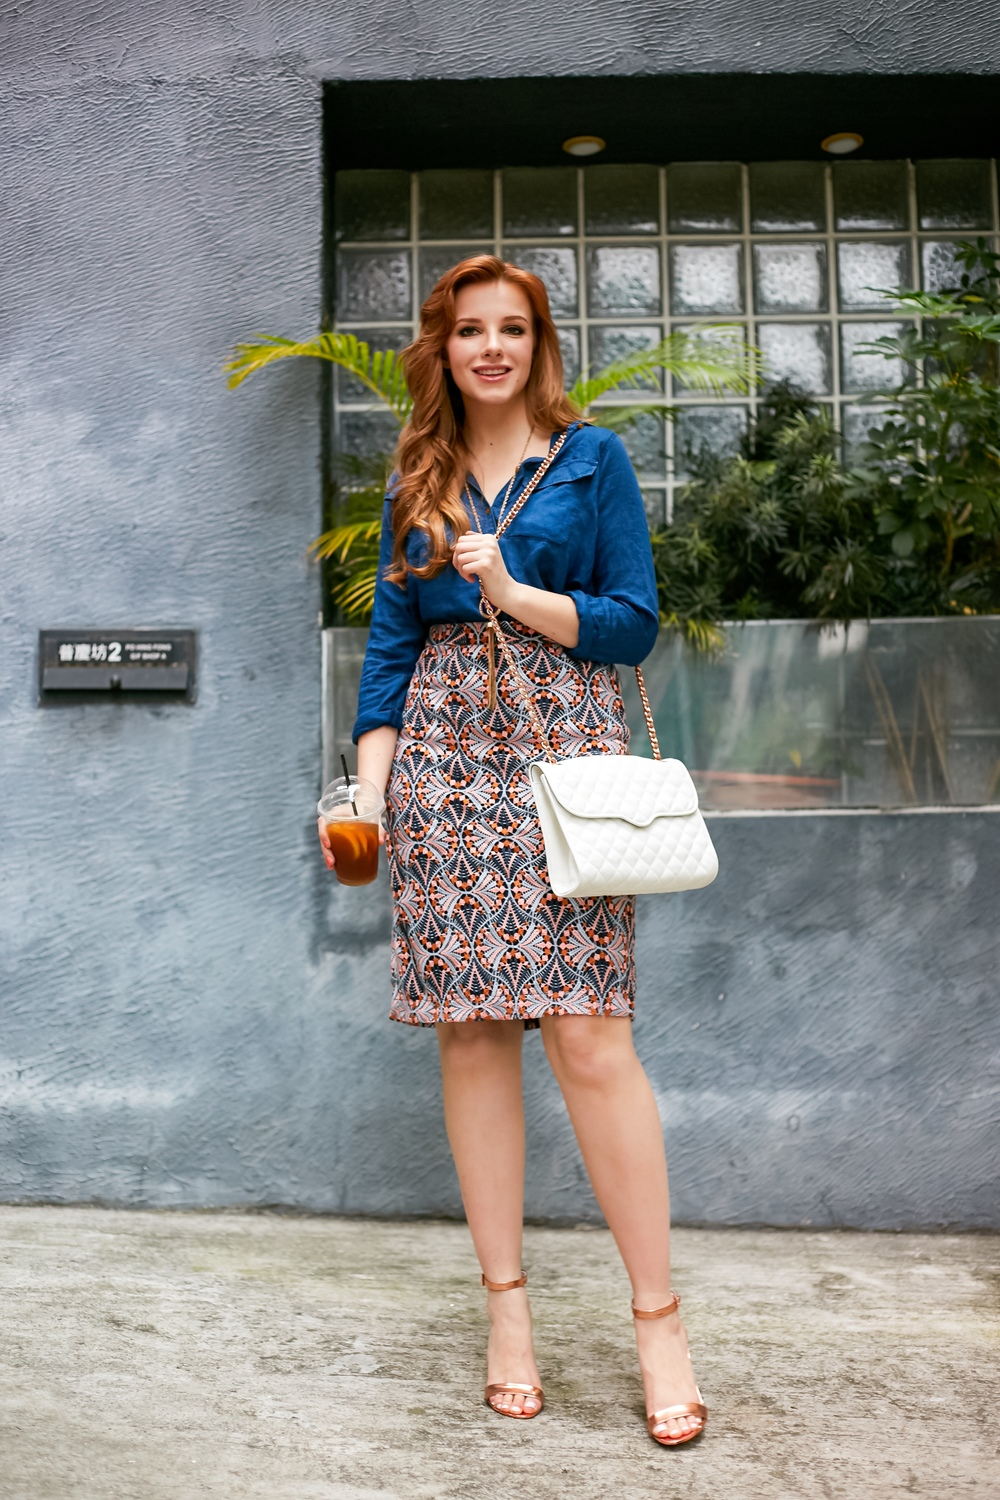 redhead fashion anthropologie skirt